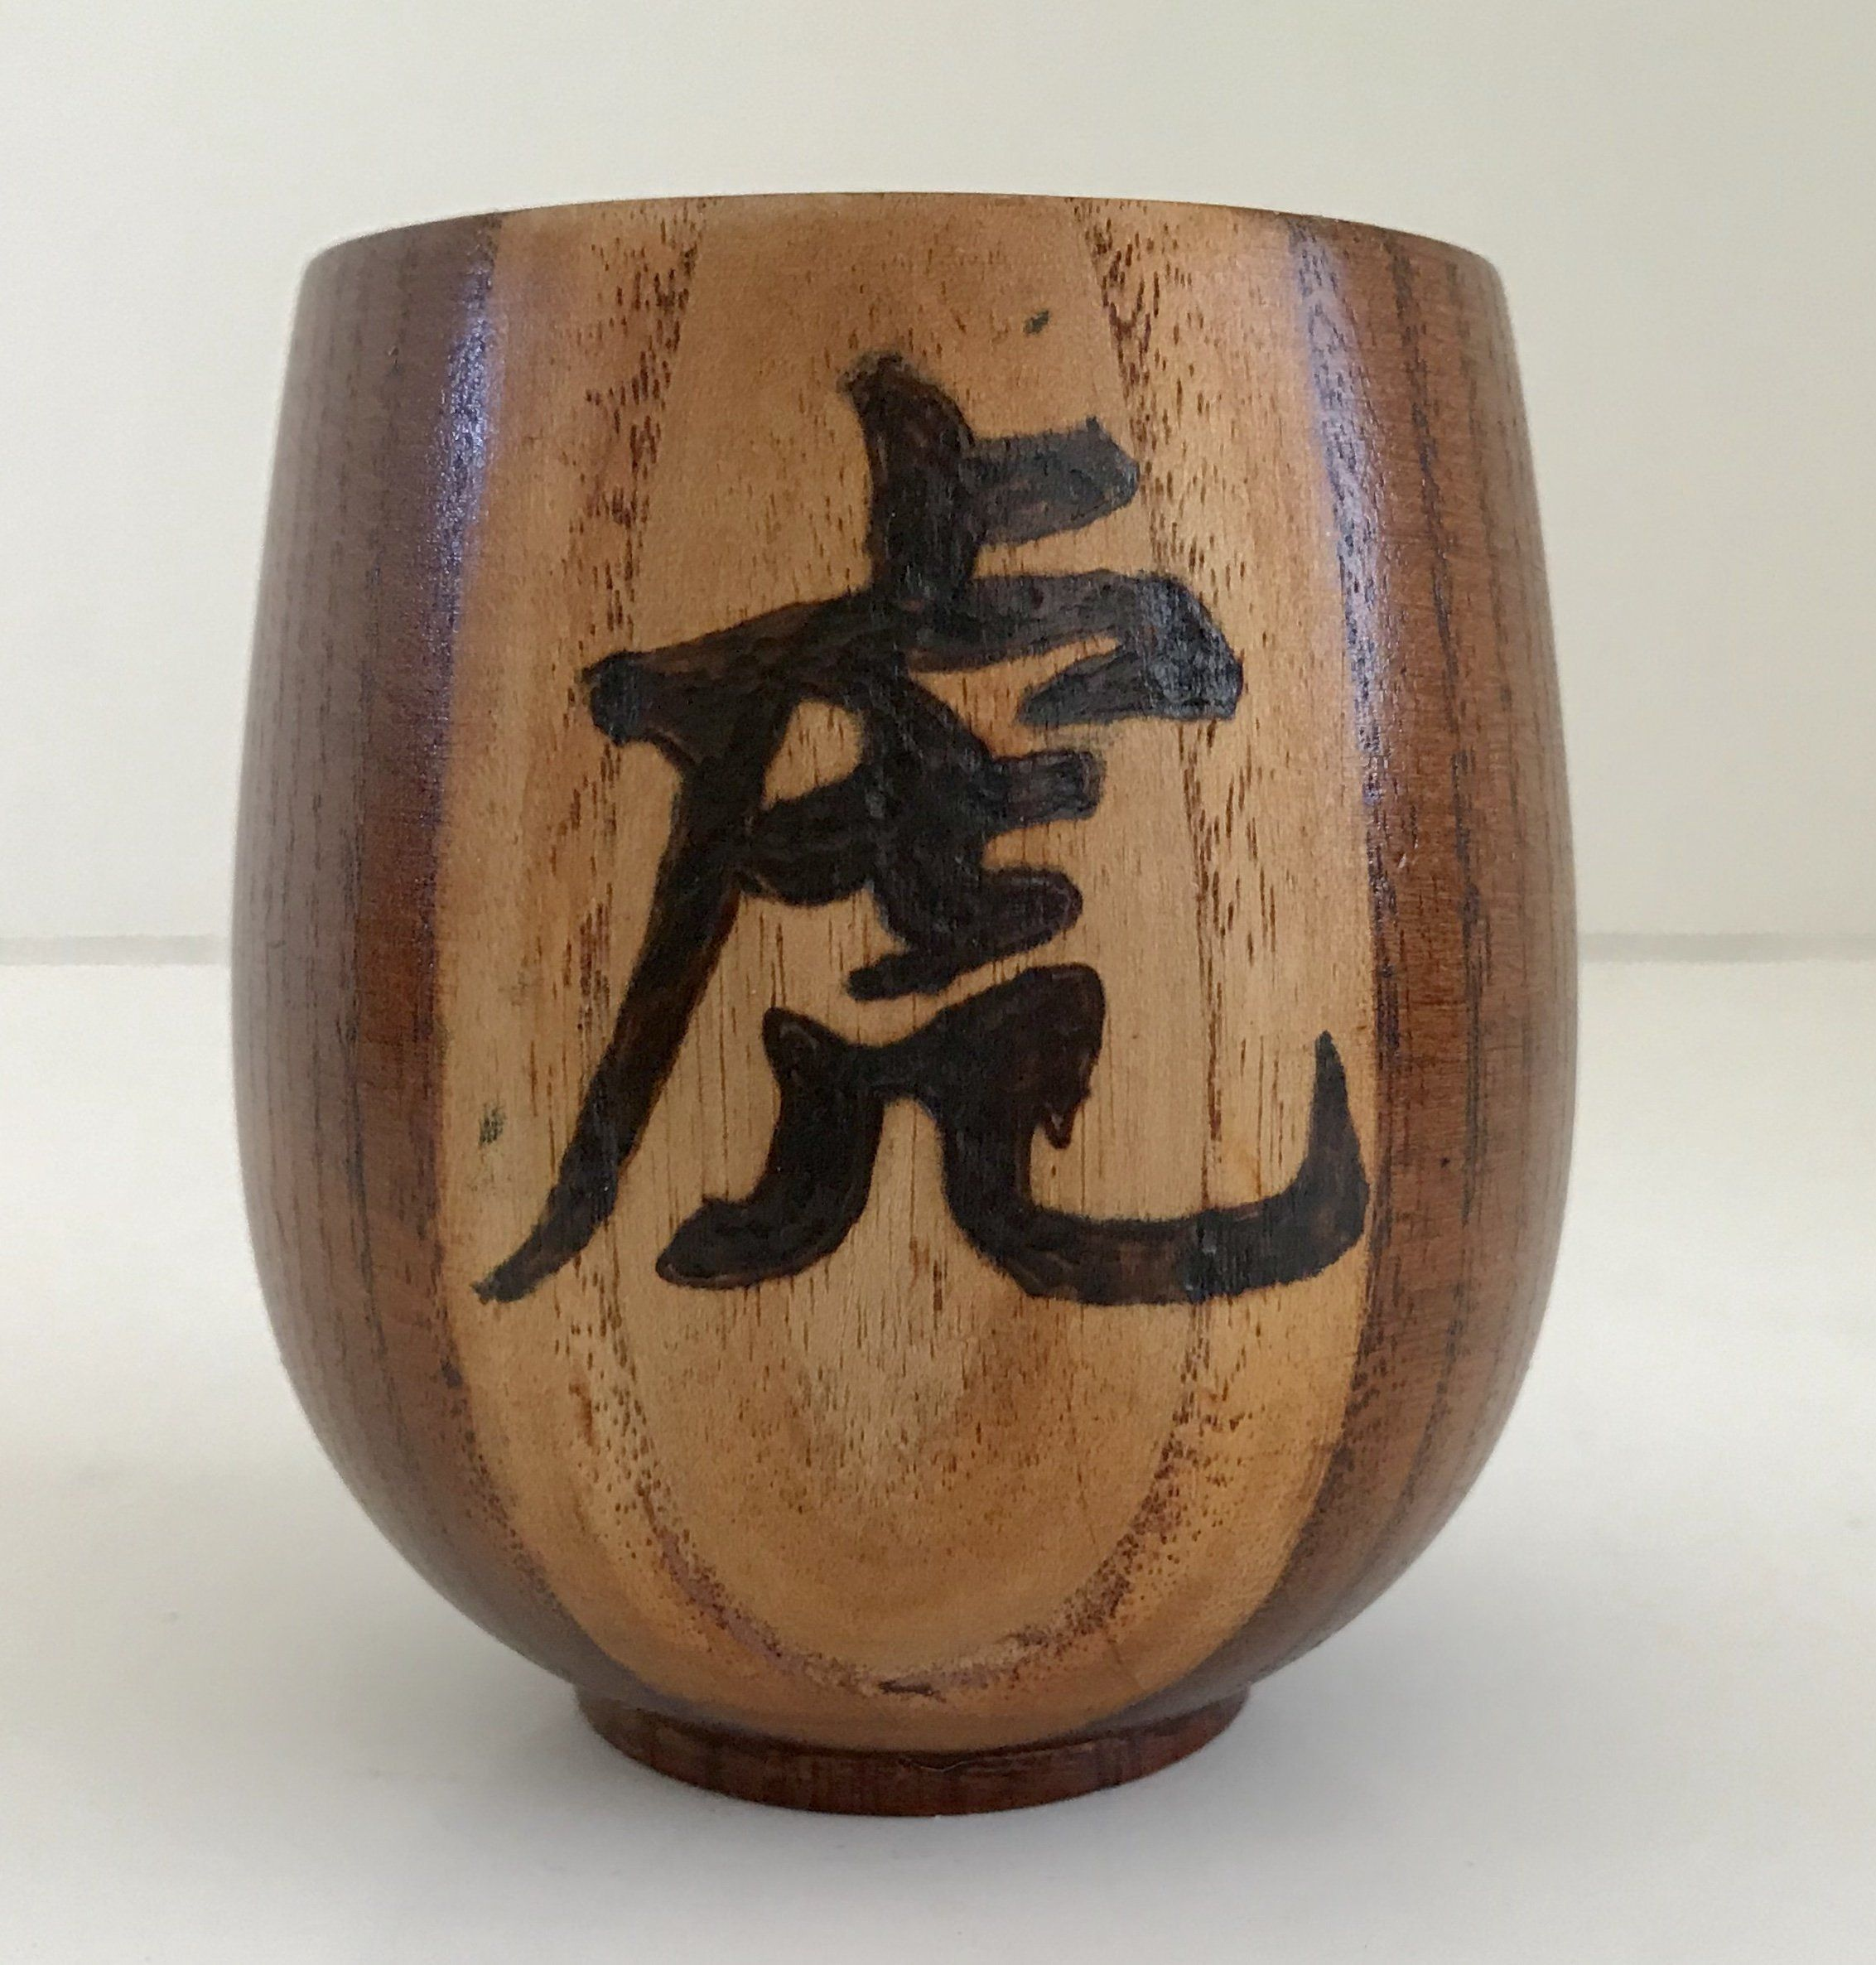 Bamboo Cup With Wood Burned Chinese Calender Symbol For Year Of The